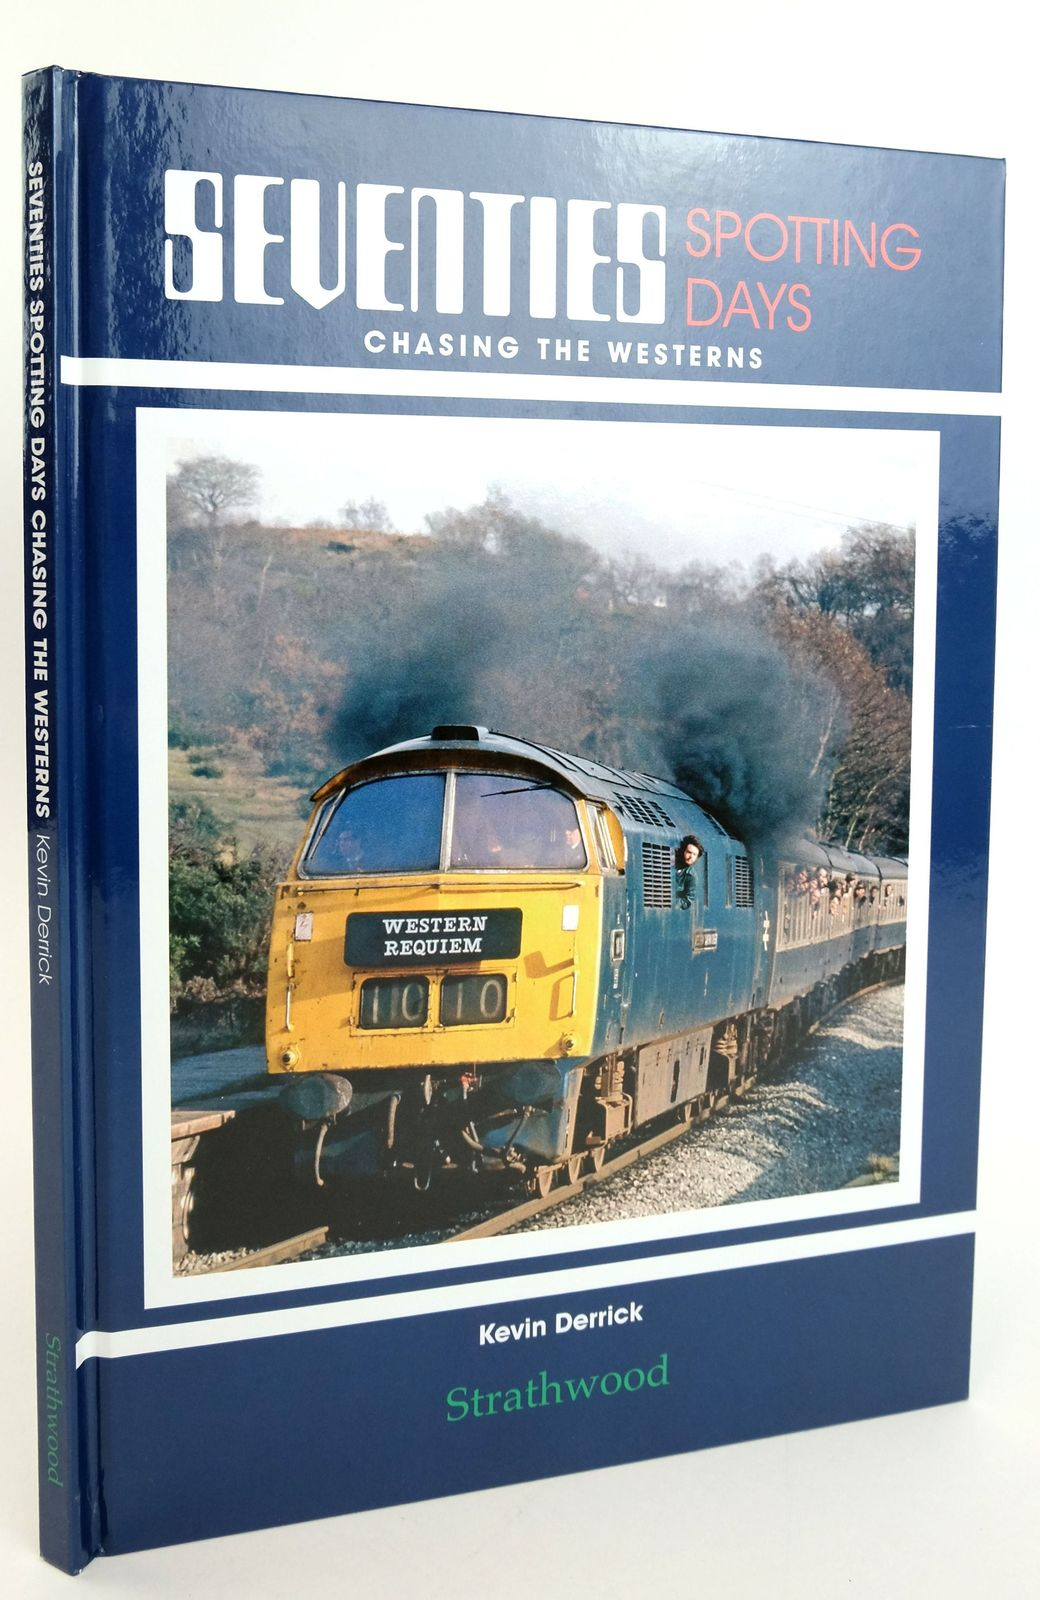 Photo of SEVENTIES SPOTTING DAYS: CHASING THE WESTERNS written by Derrick, Kevin published by Strathwood Ltd (STOCK CODE: 1820048)  for sale by Stella & Rose's Books